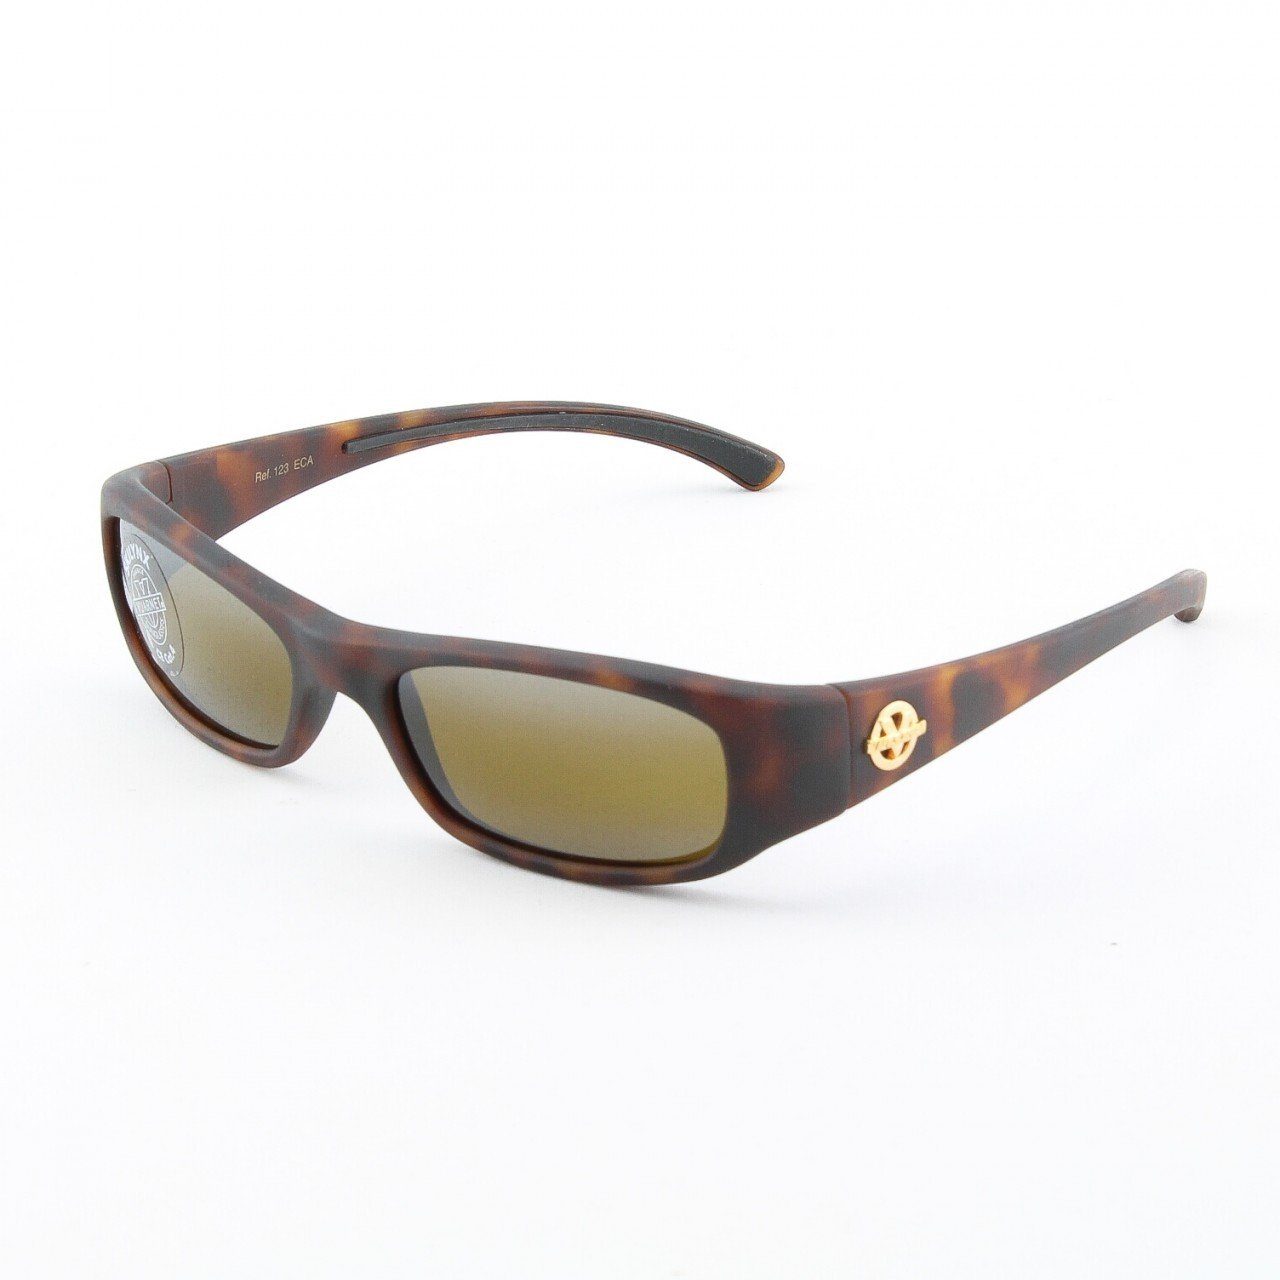 VUARNET 4123 ECA Sunglasses Col. Dark Havana with Brown Skilynx Lenses